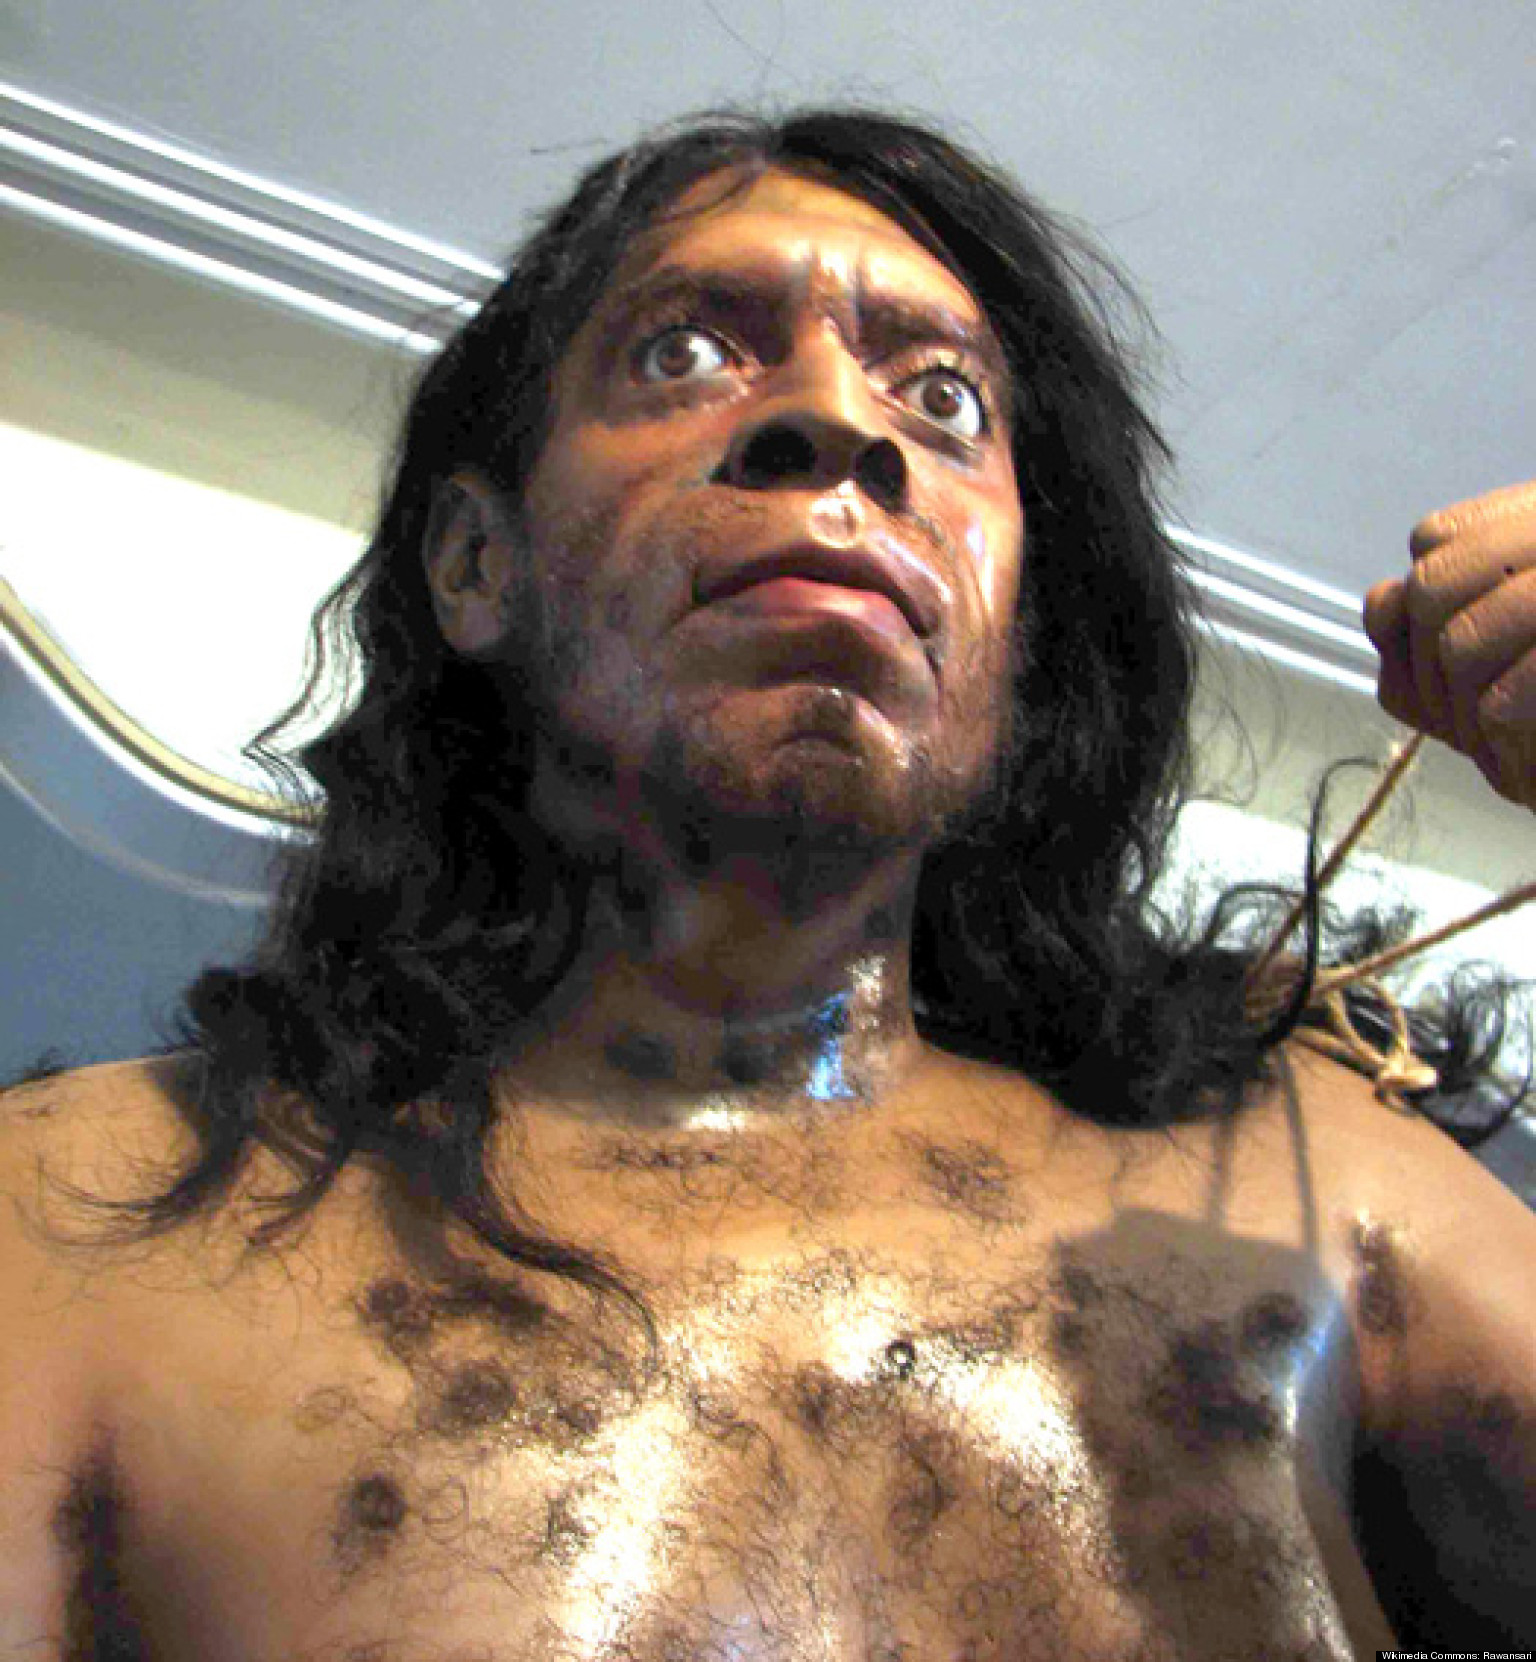 Caveman Meat : Caveman diet stone age humans ate less meat than